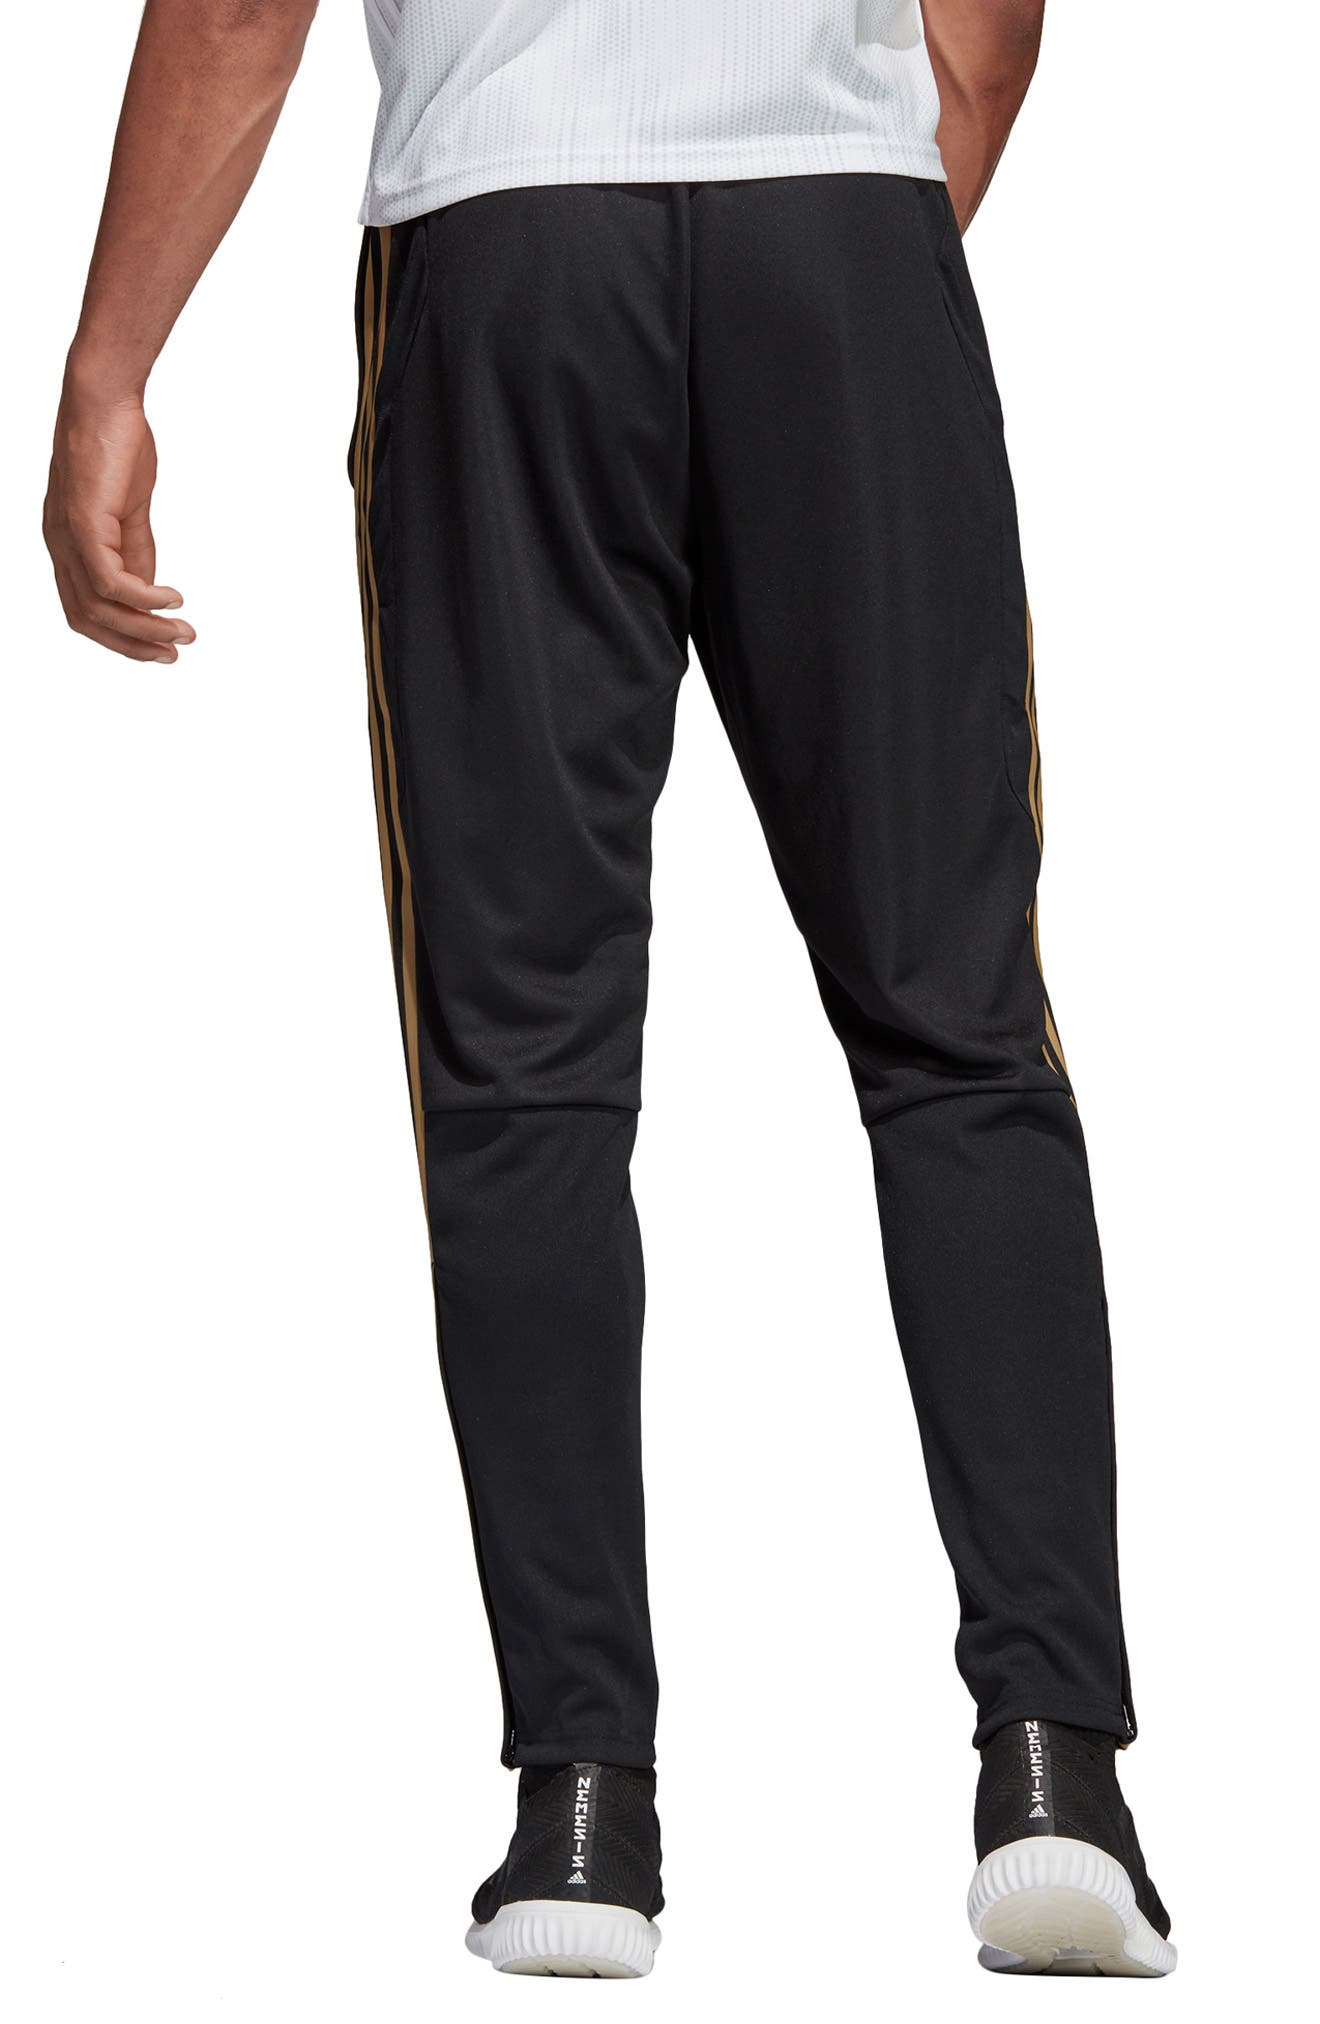 ADIDAS, Tiro 19 Training Pants, Alternate thumbnail 2, color, BLACK/ GOLD